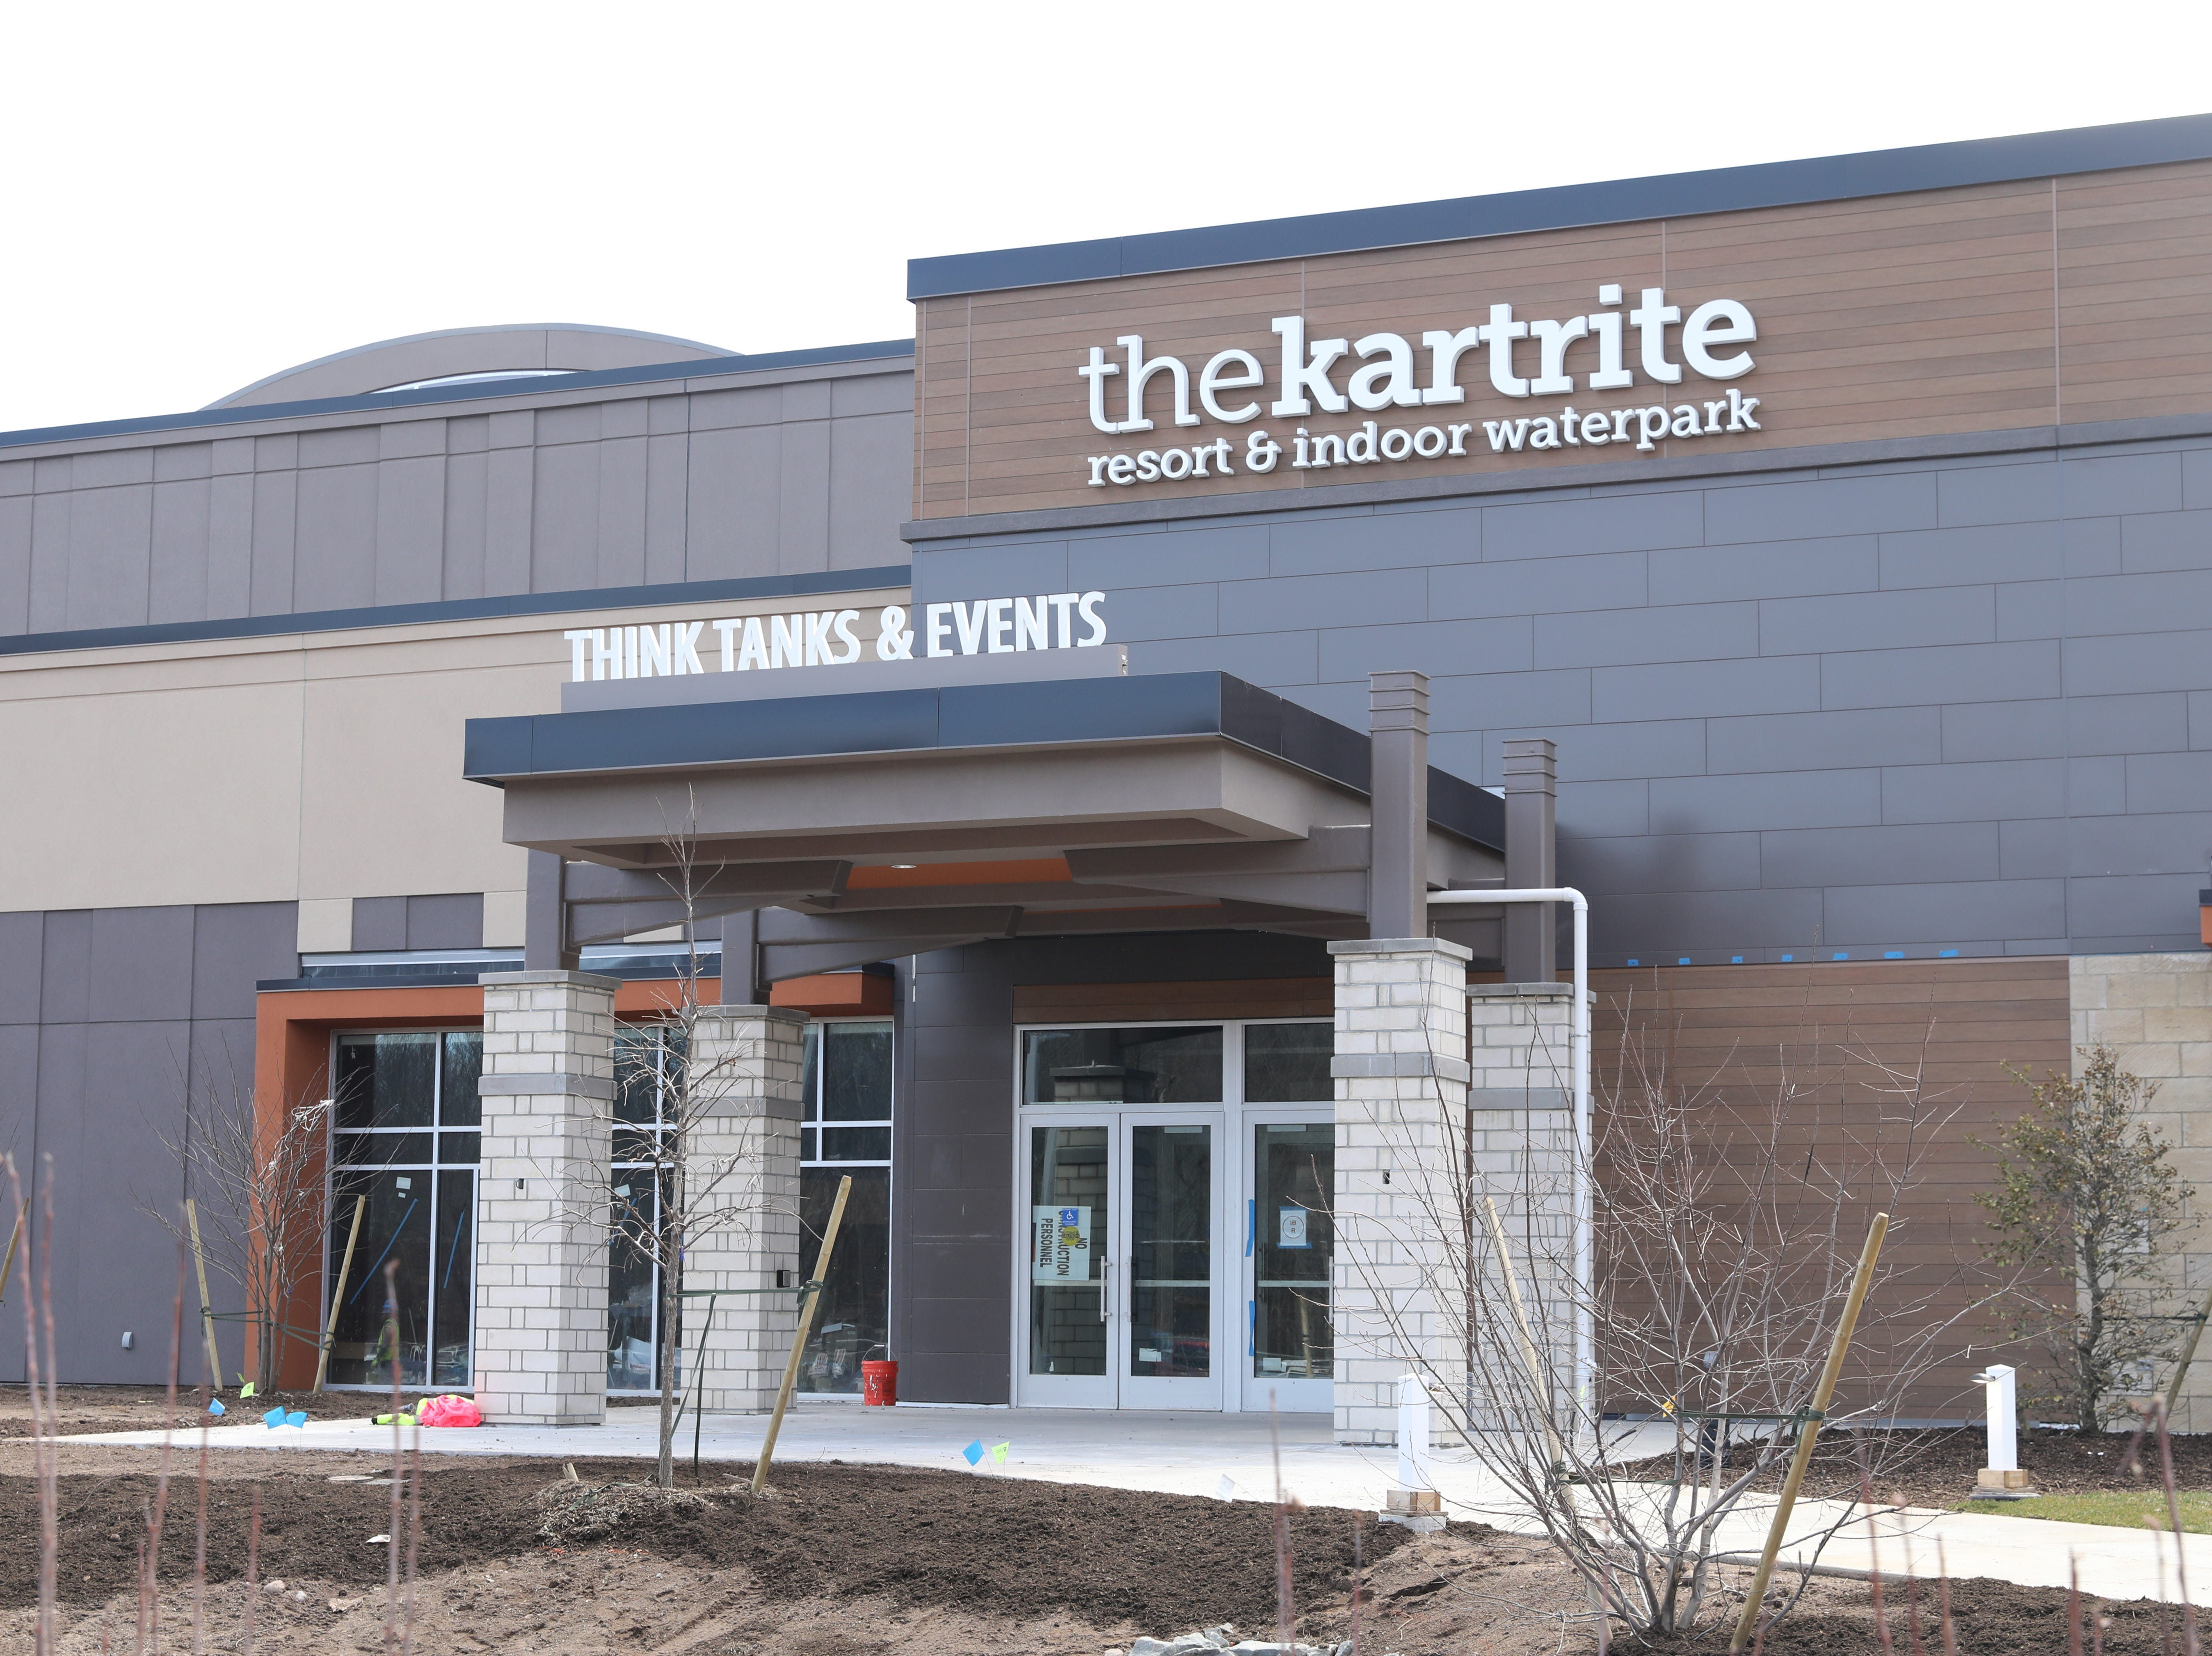 The conference center entrance at The Kartrite Resort & Indoor Waterpark in Monticello, April 10, 2019.